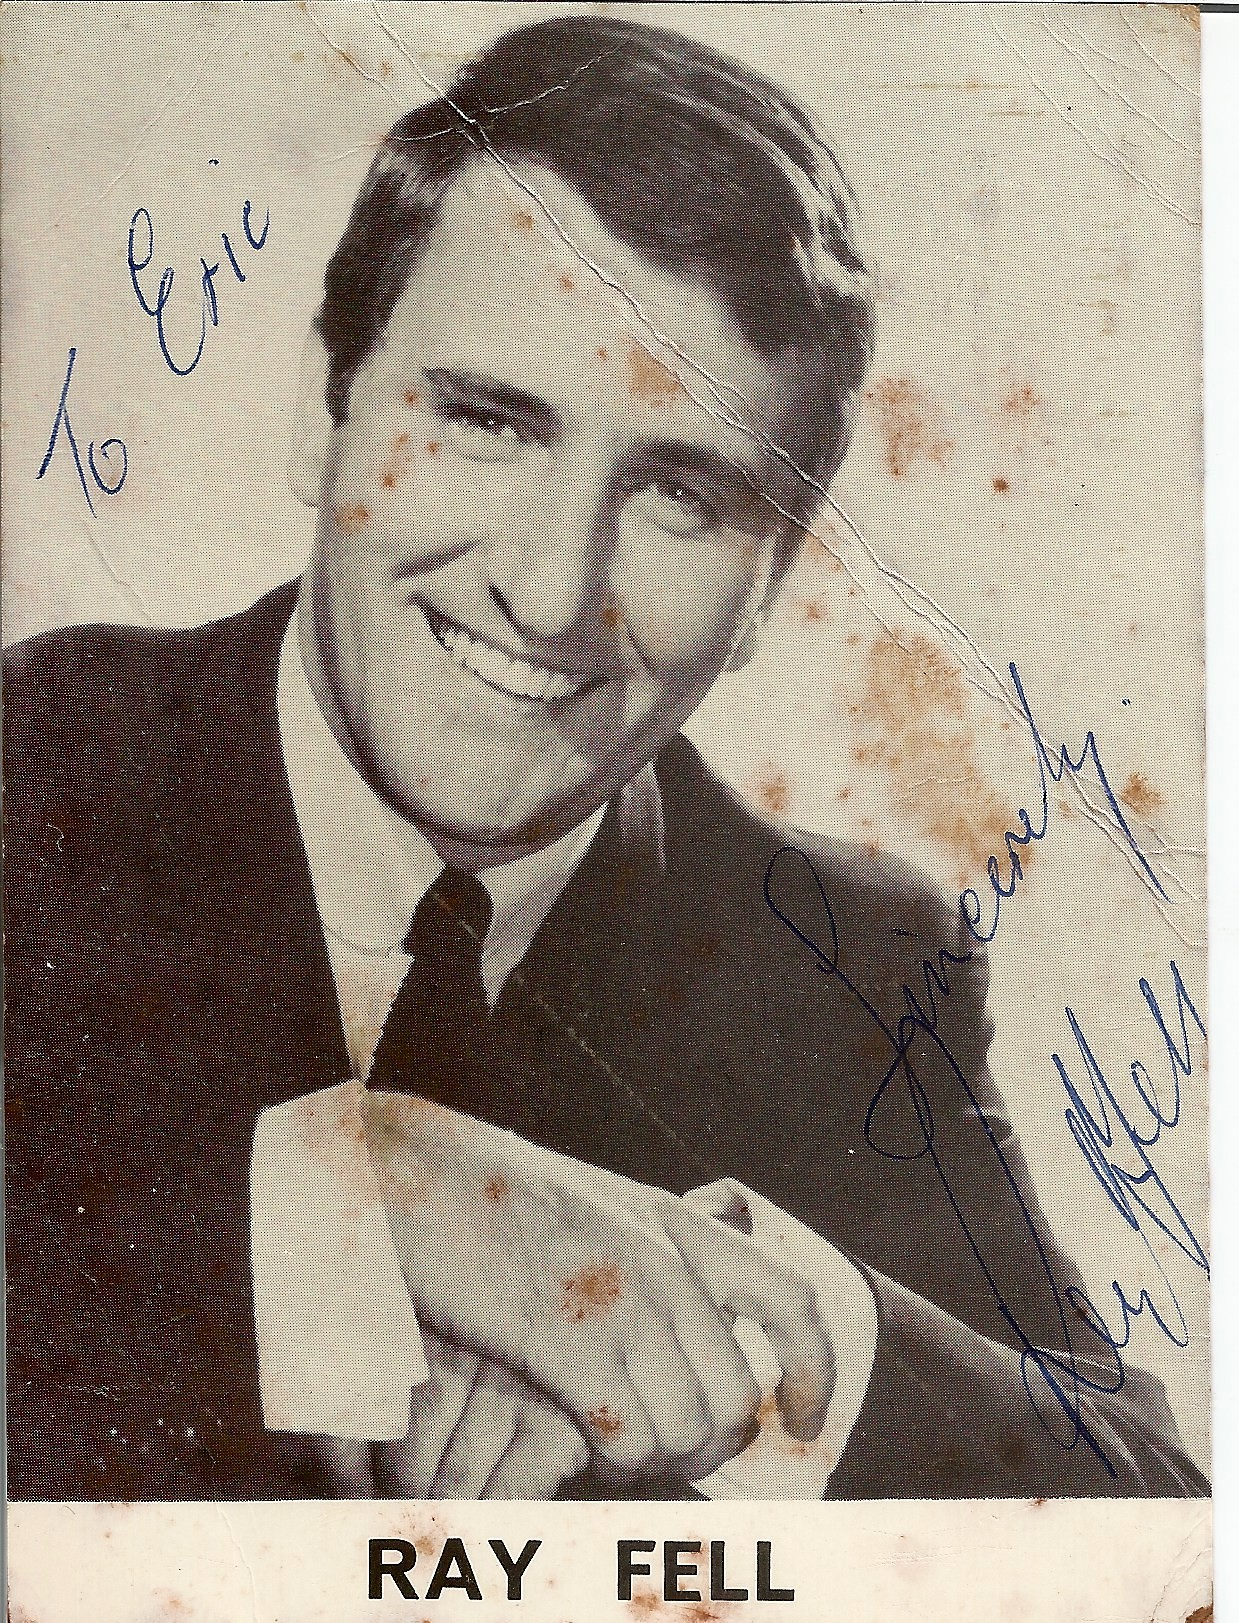 Ray Fell signed music card. 5.5x4.5 signed black and white photo/music card. Ray Fell was born on